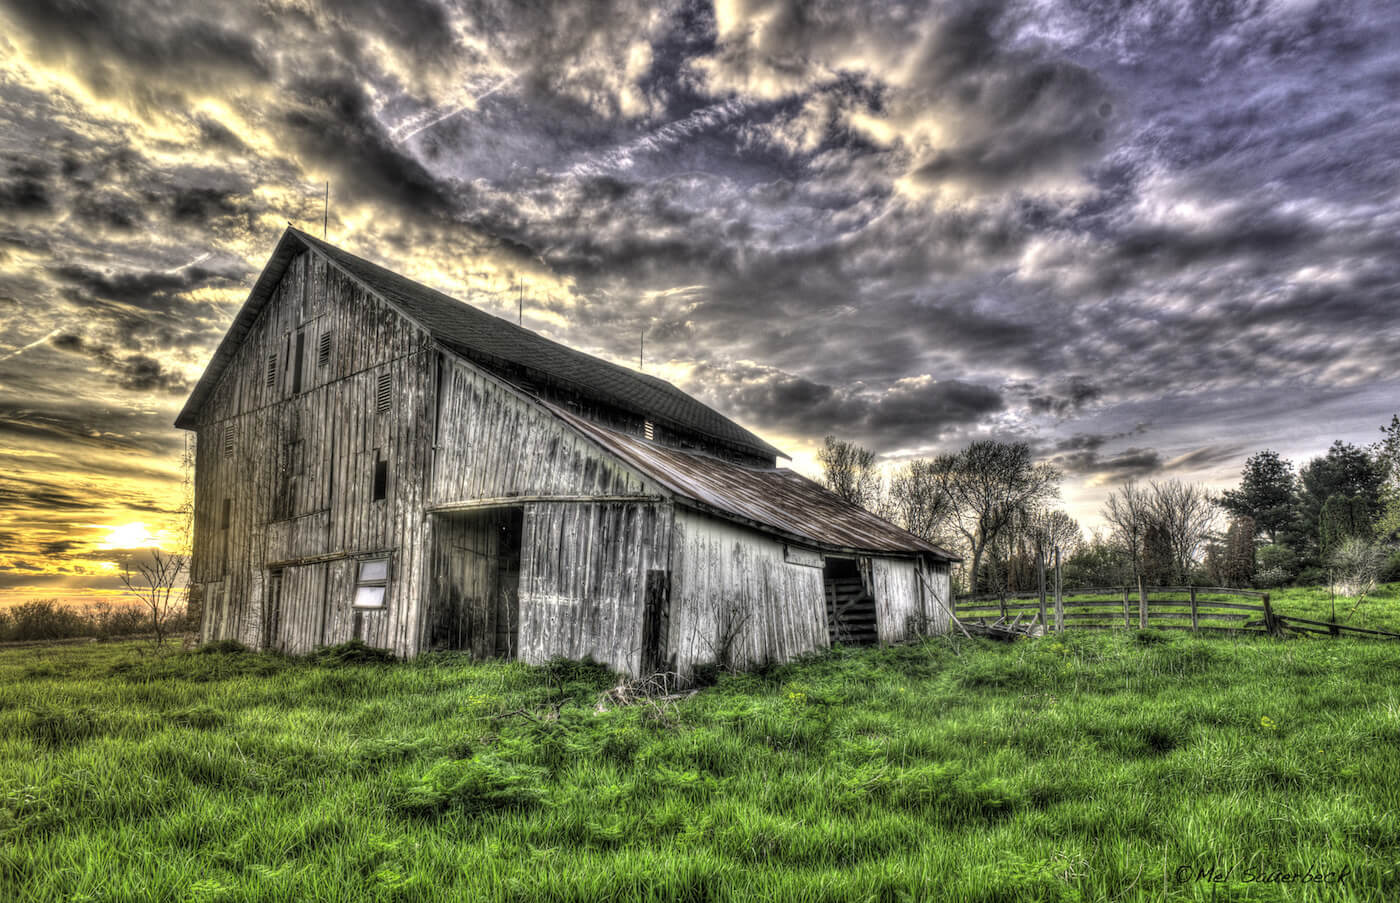 Weathered old barn in bright green field against dramatic cloud sky at sunset, high dynamic range photo - HDR